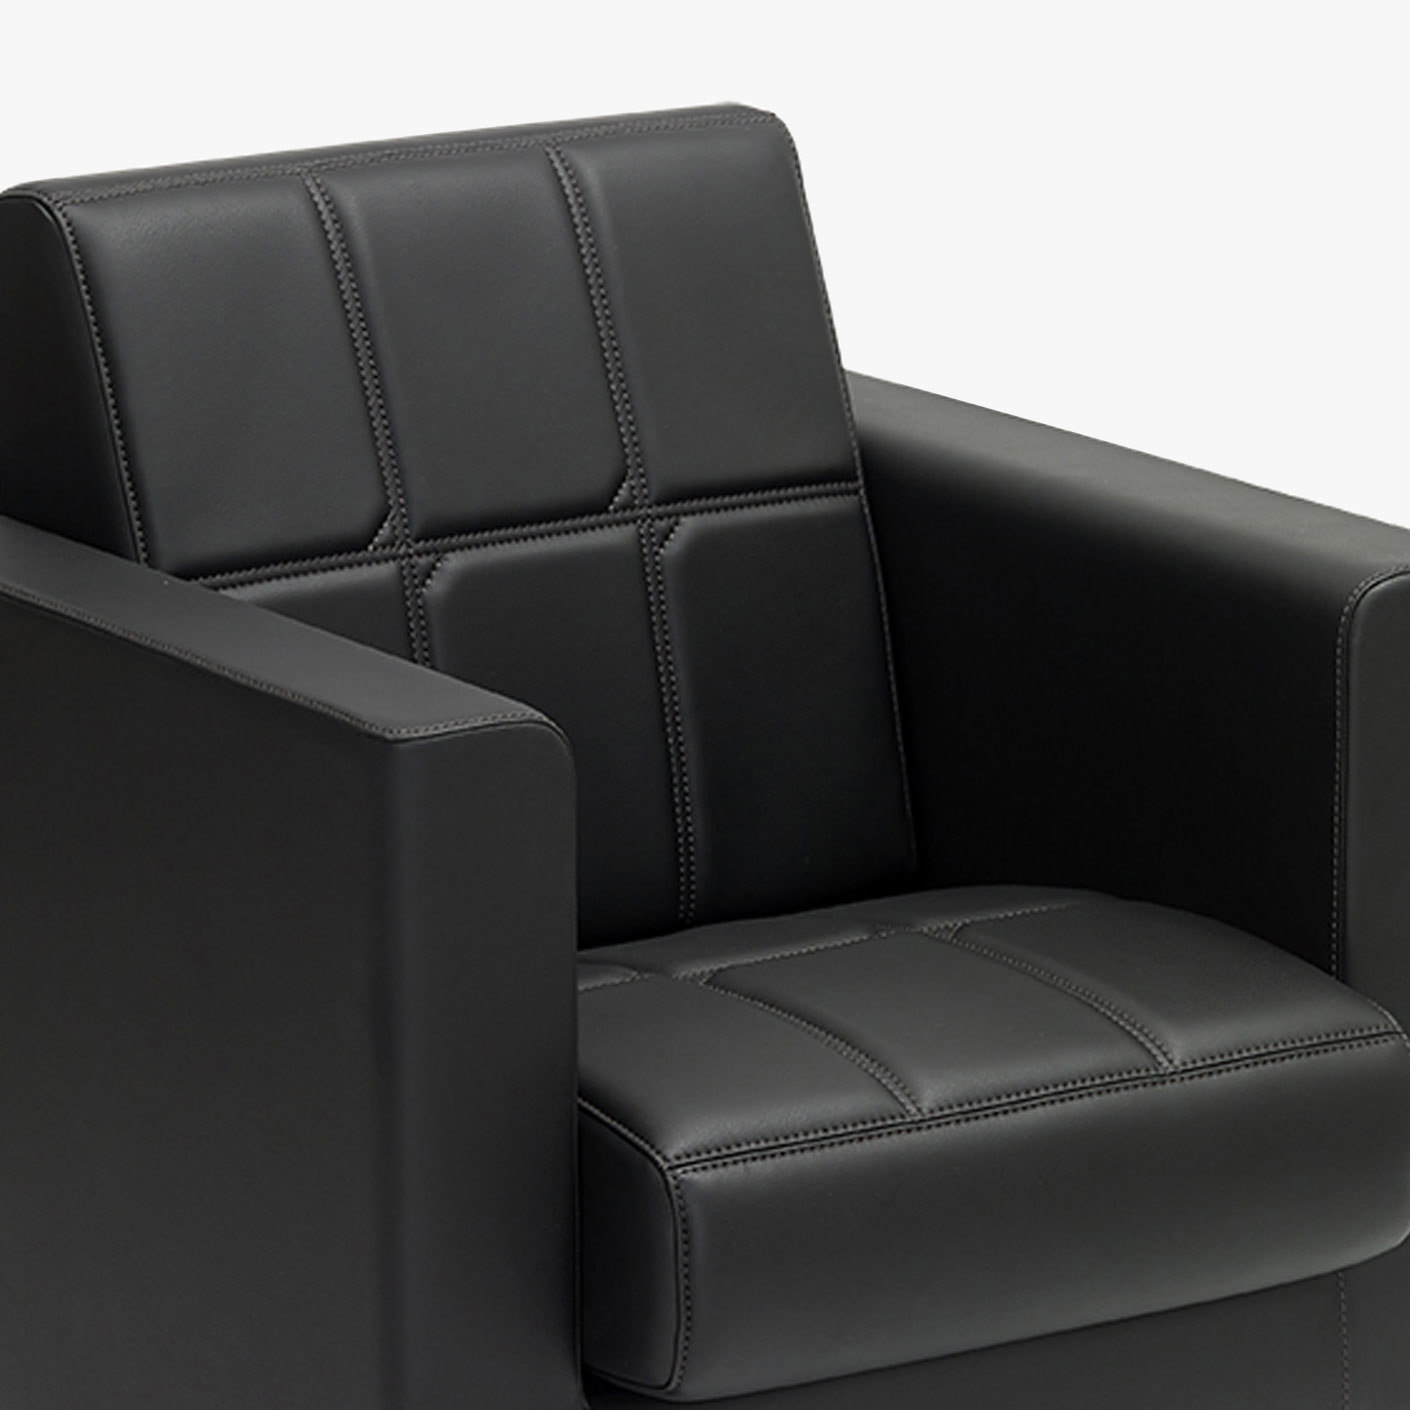 Canape seat and back upholstery with square stiching